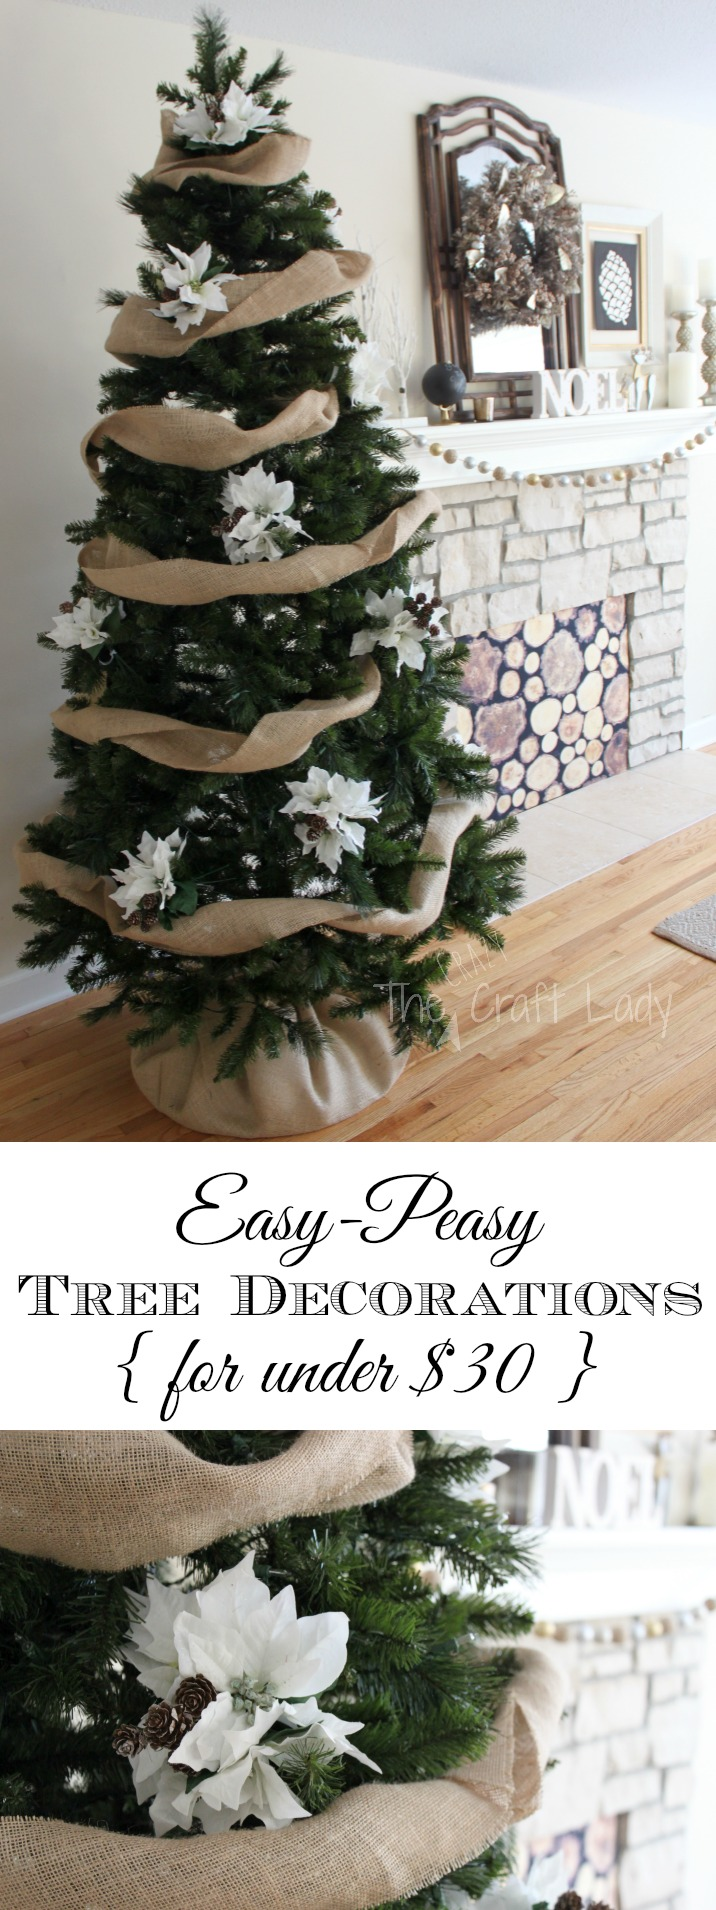 see how easy diy christmas tree decorating can be using a few simple supplies - Easy Christmas Tree Decorations